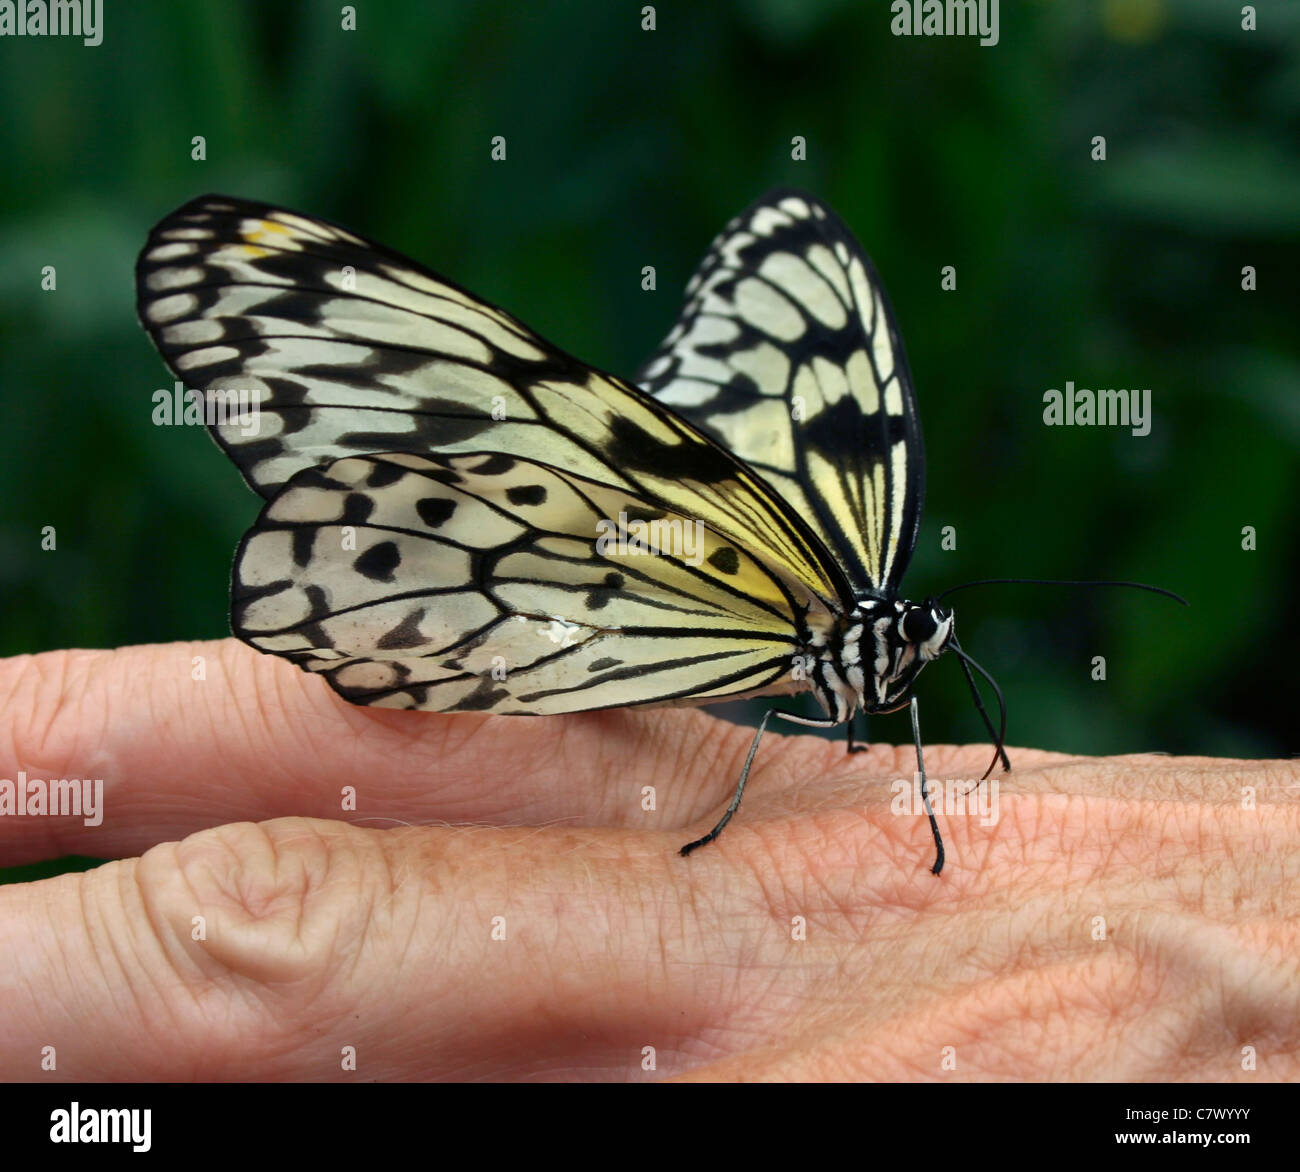 The Paper Kite, Rice Paper, or Large Tree Nymph butterfly. Benalmadena Butterfly Park, Malaga, Spain. - Stock Image